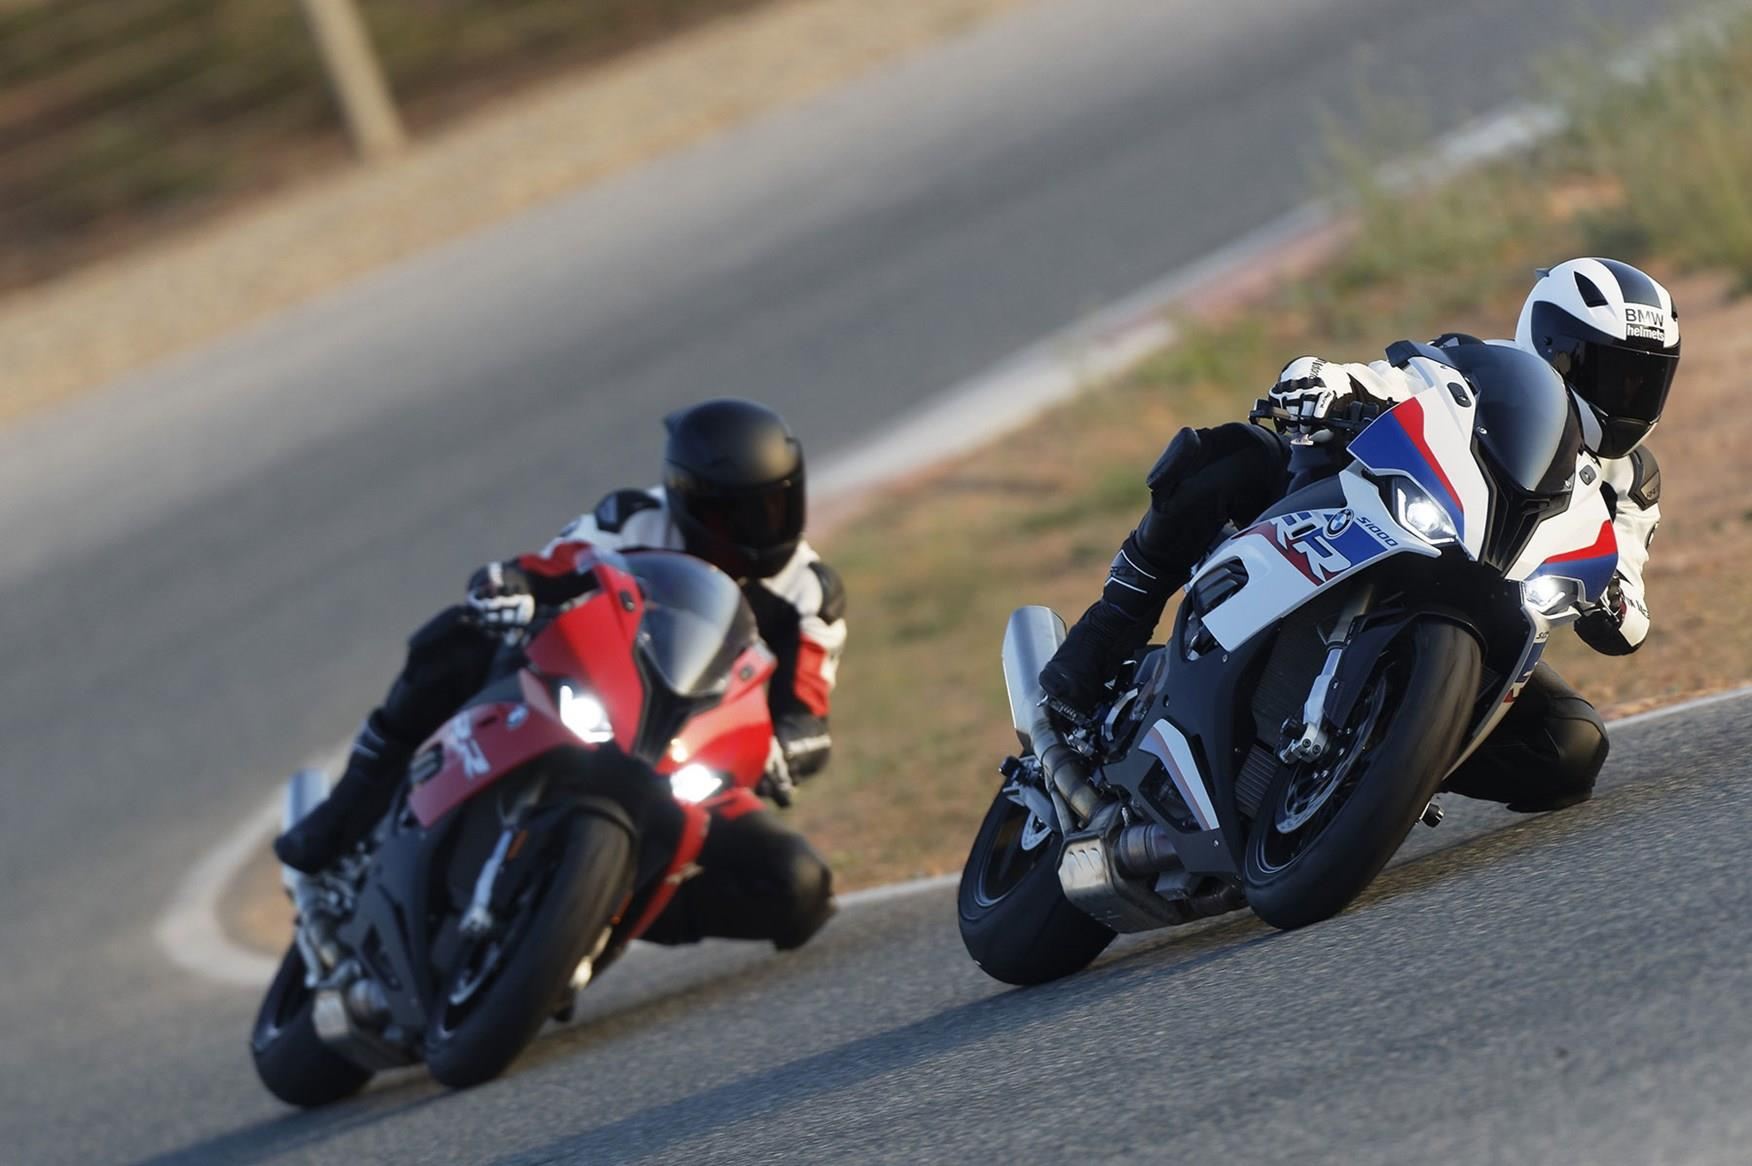 The 2019 BMW S1000RR in action